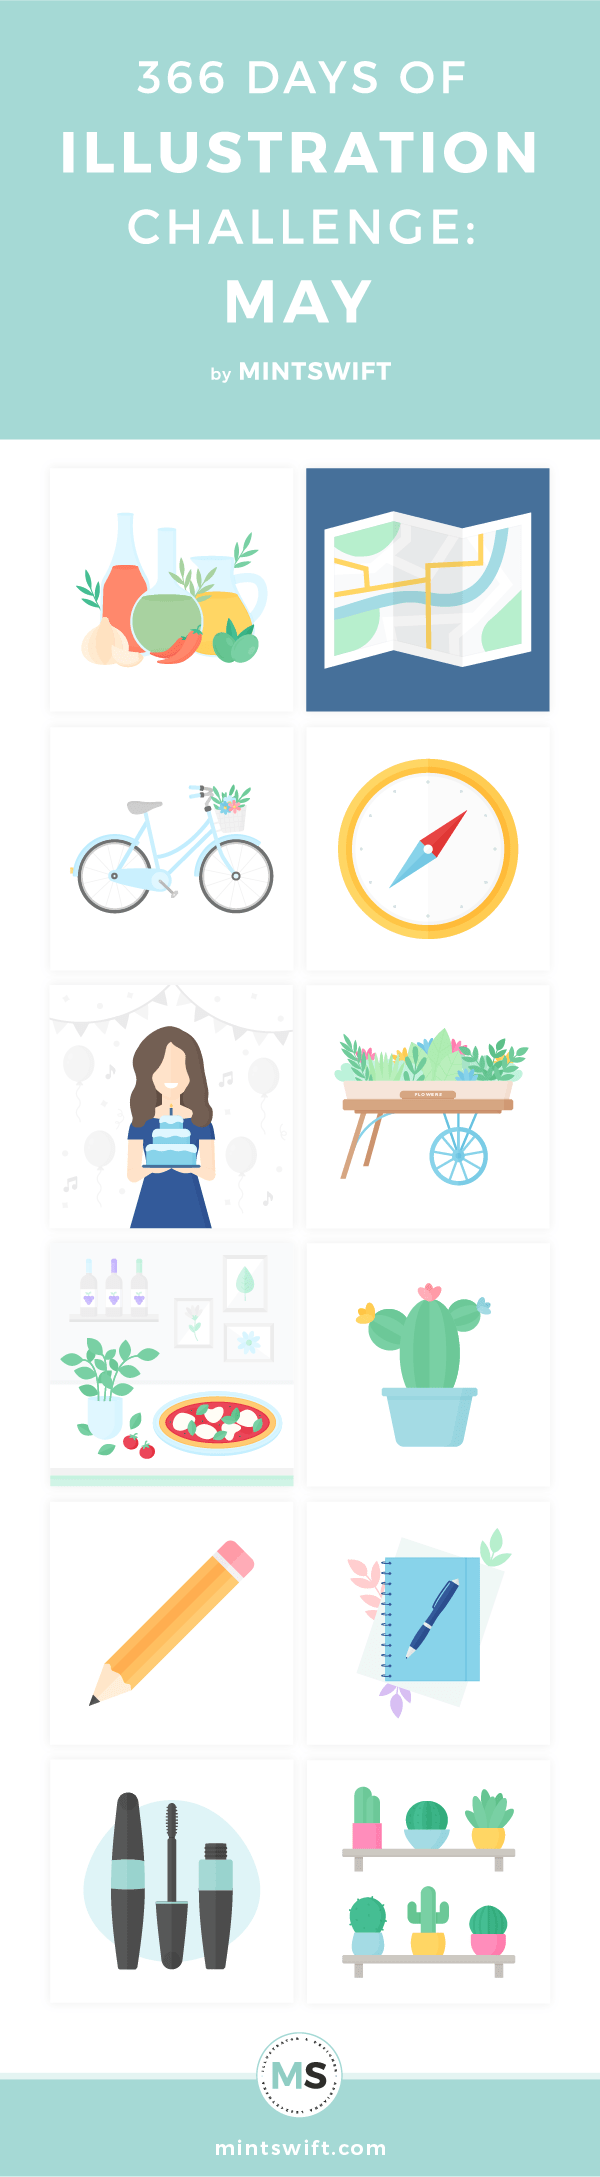 Top 12 flat illustrations about food, cosmetics, (birthday) parties and travel from May